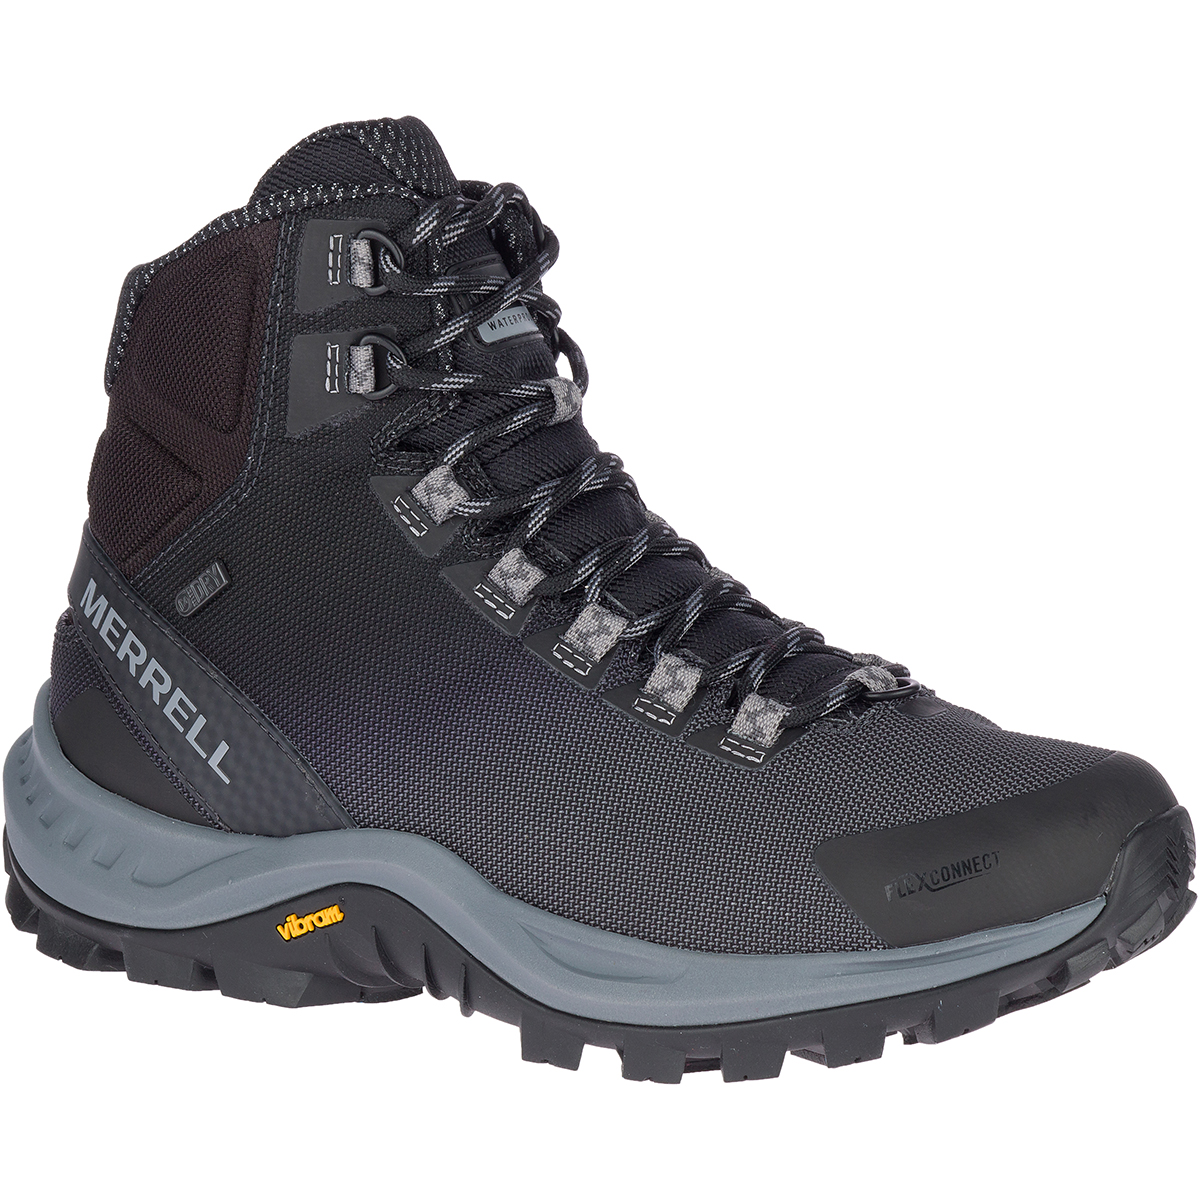 Merrrel Men's Thermo Cross Waterproof Hiking Boot - Black, 10